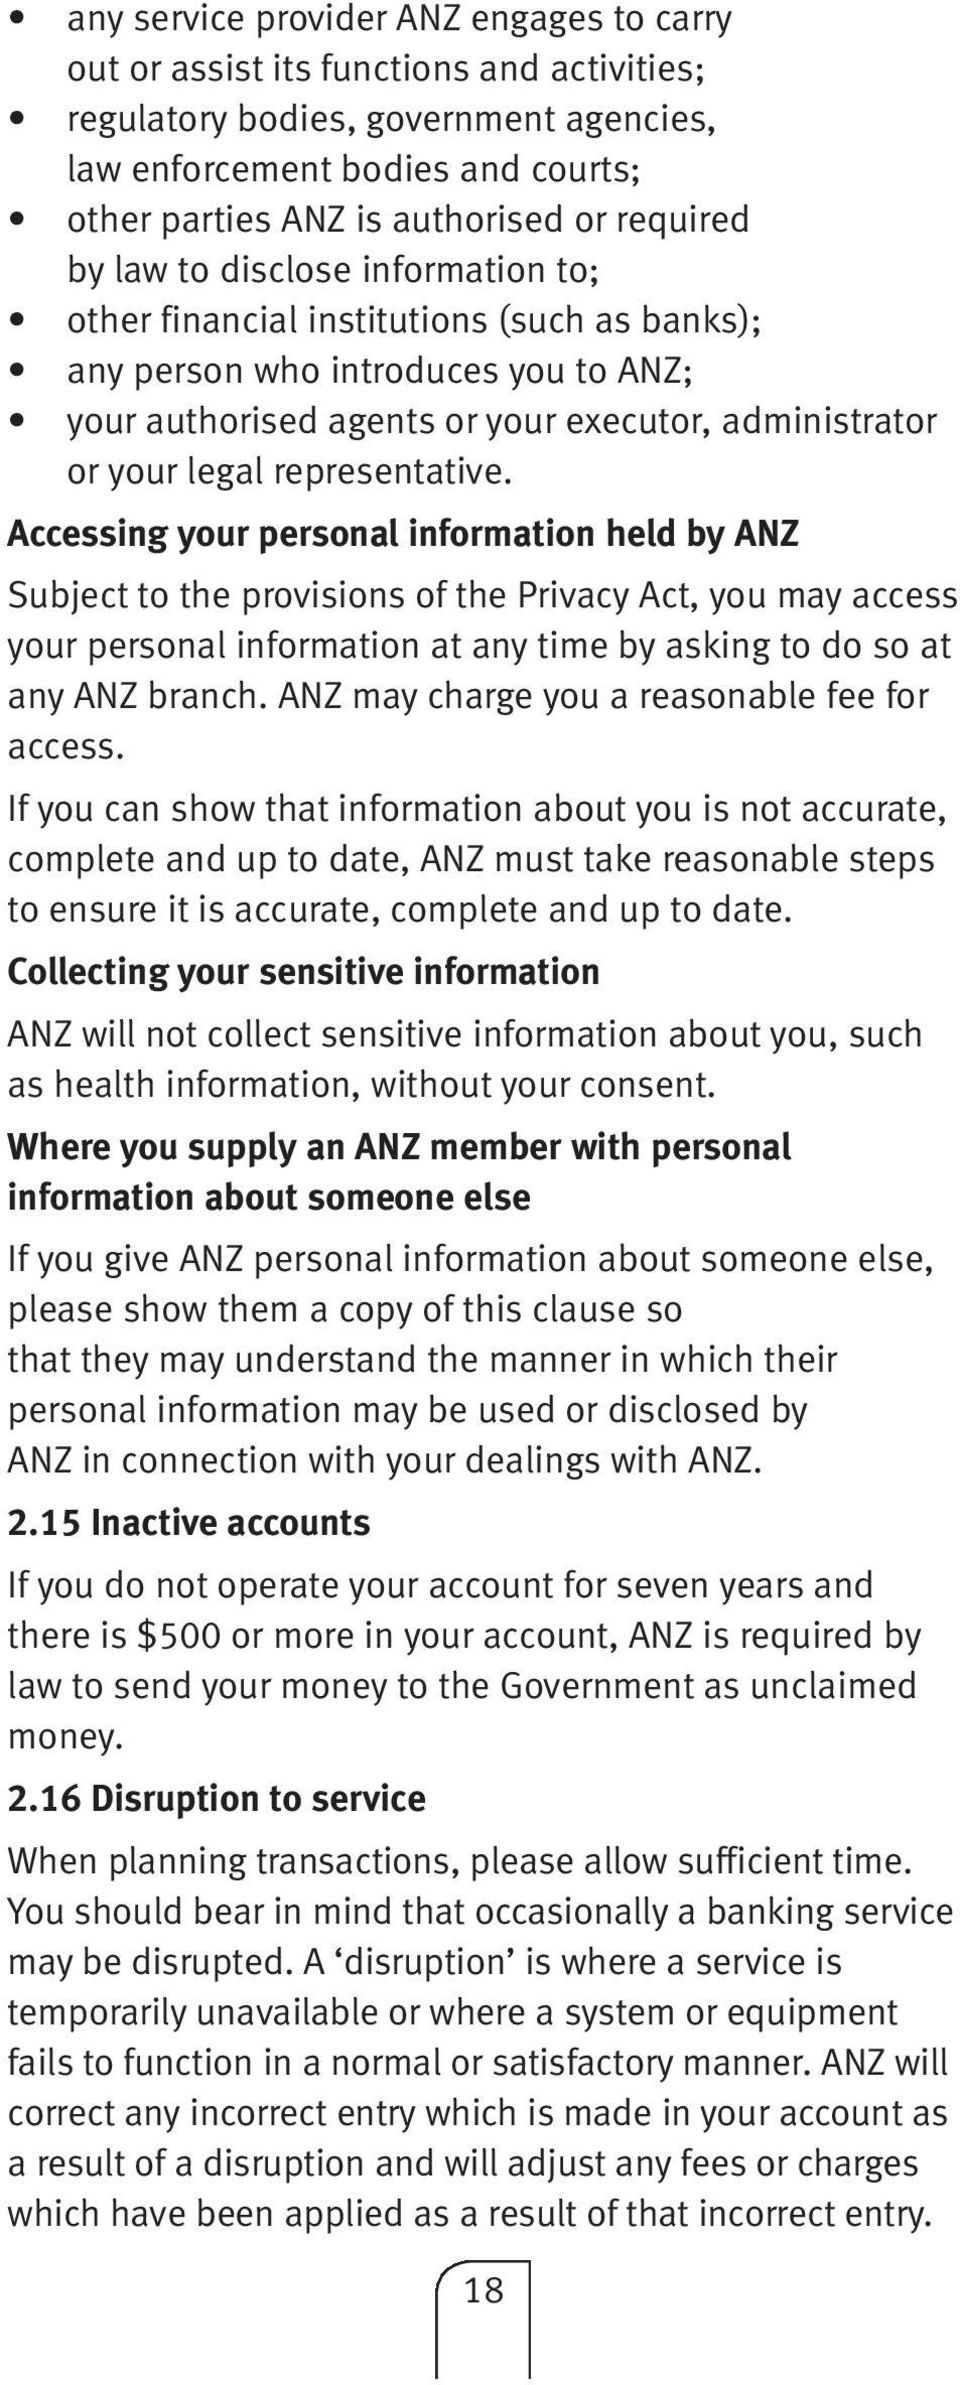 representative. Accessing your personal information held by ANZ Subject to the provisions of the Privacy Act, you may access your personal information at any time by asking to do so at any ANZ branch.